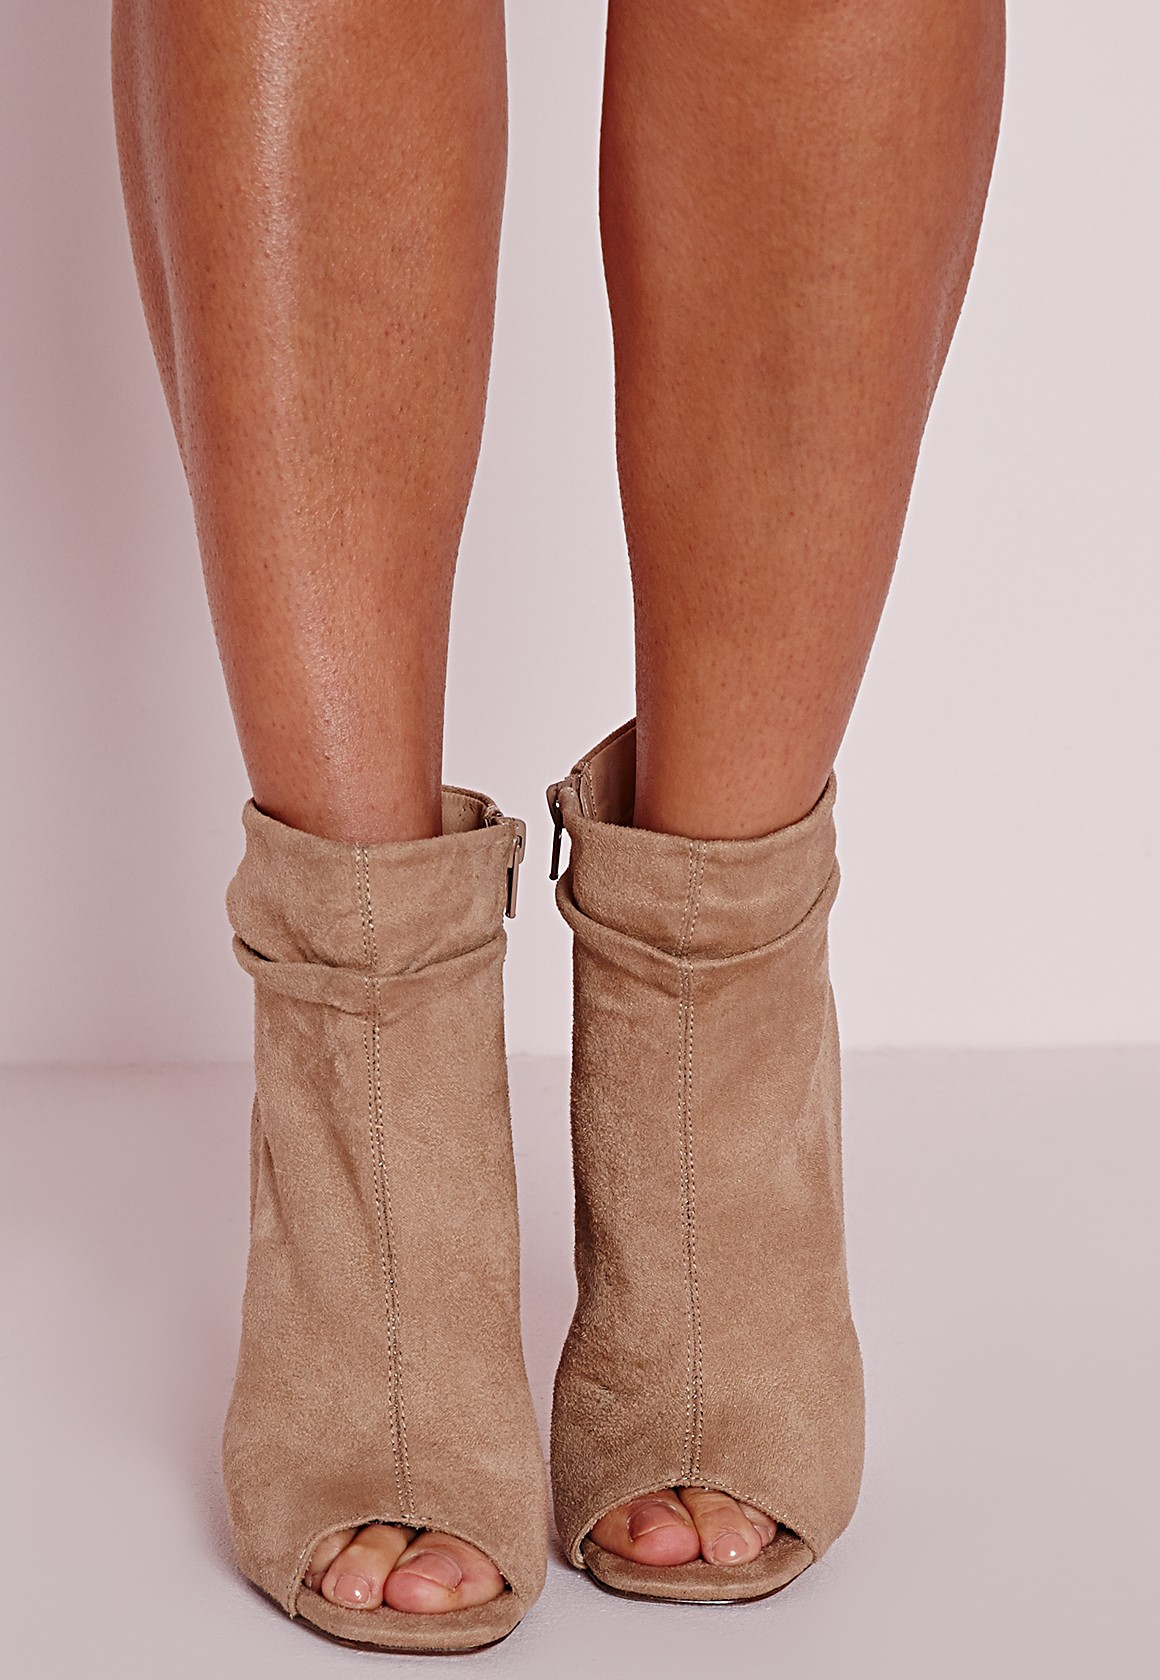 Missguided Ruched Detail Peep Toe Ankle Boots Nude in Natural - Lyst 2d51046da03a